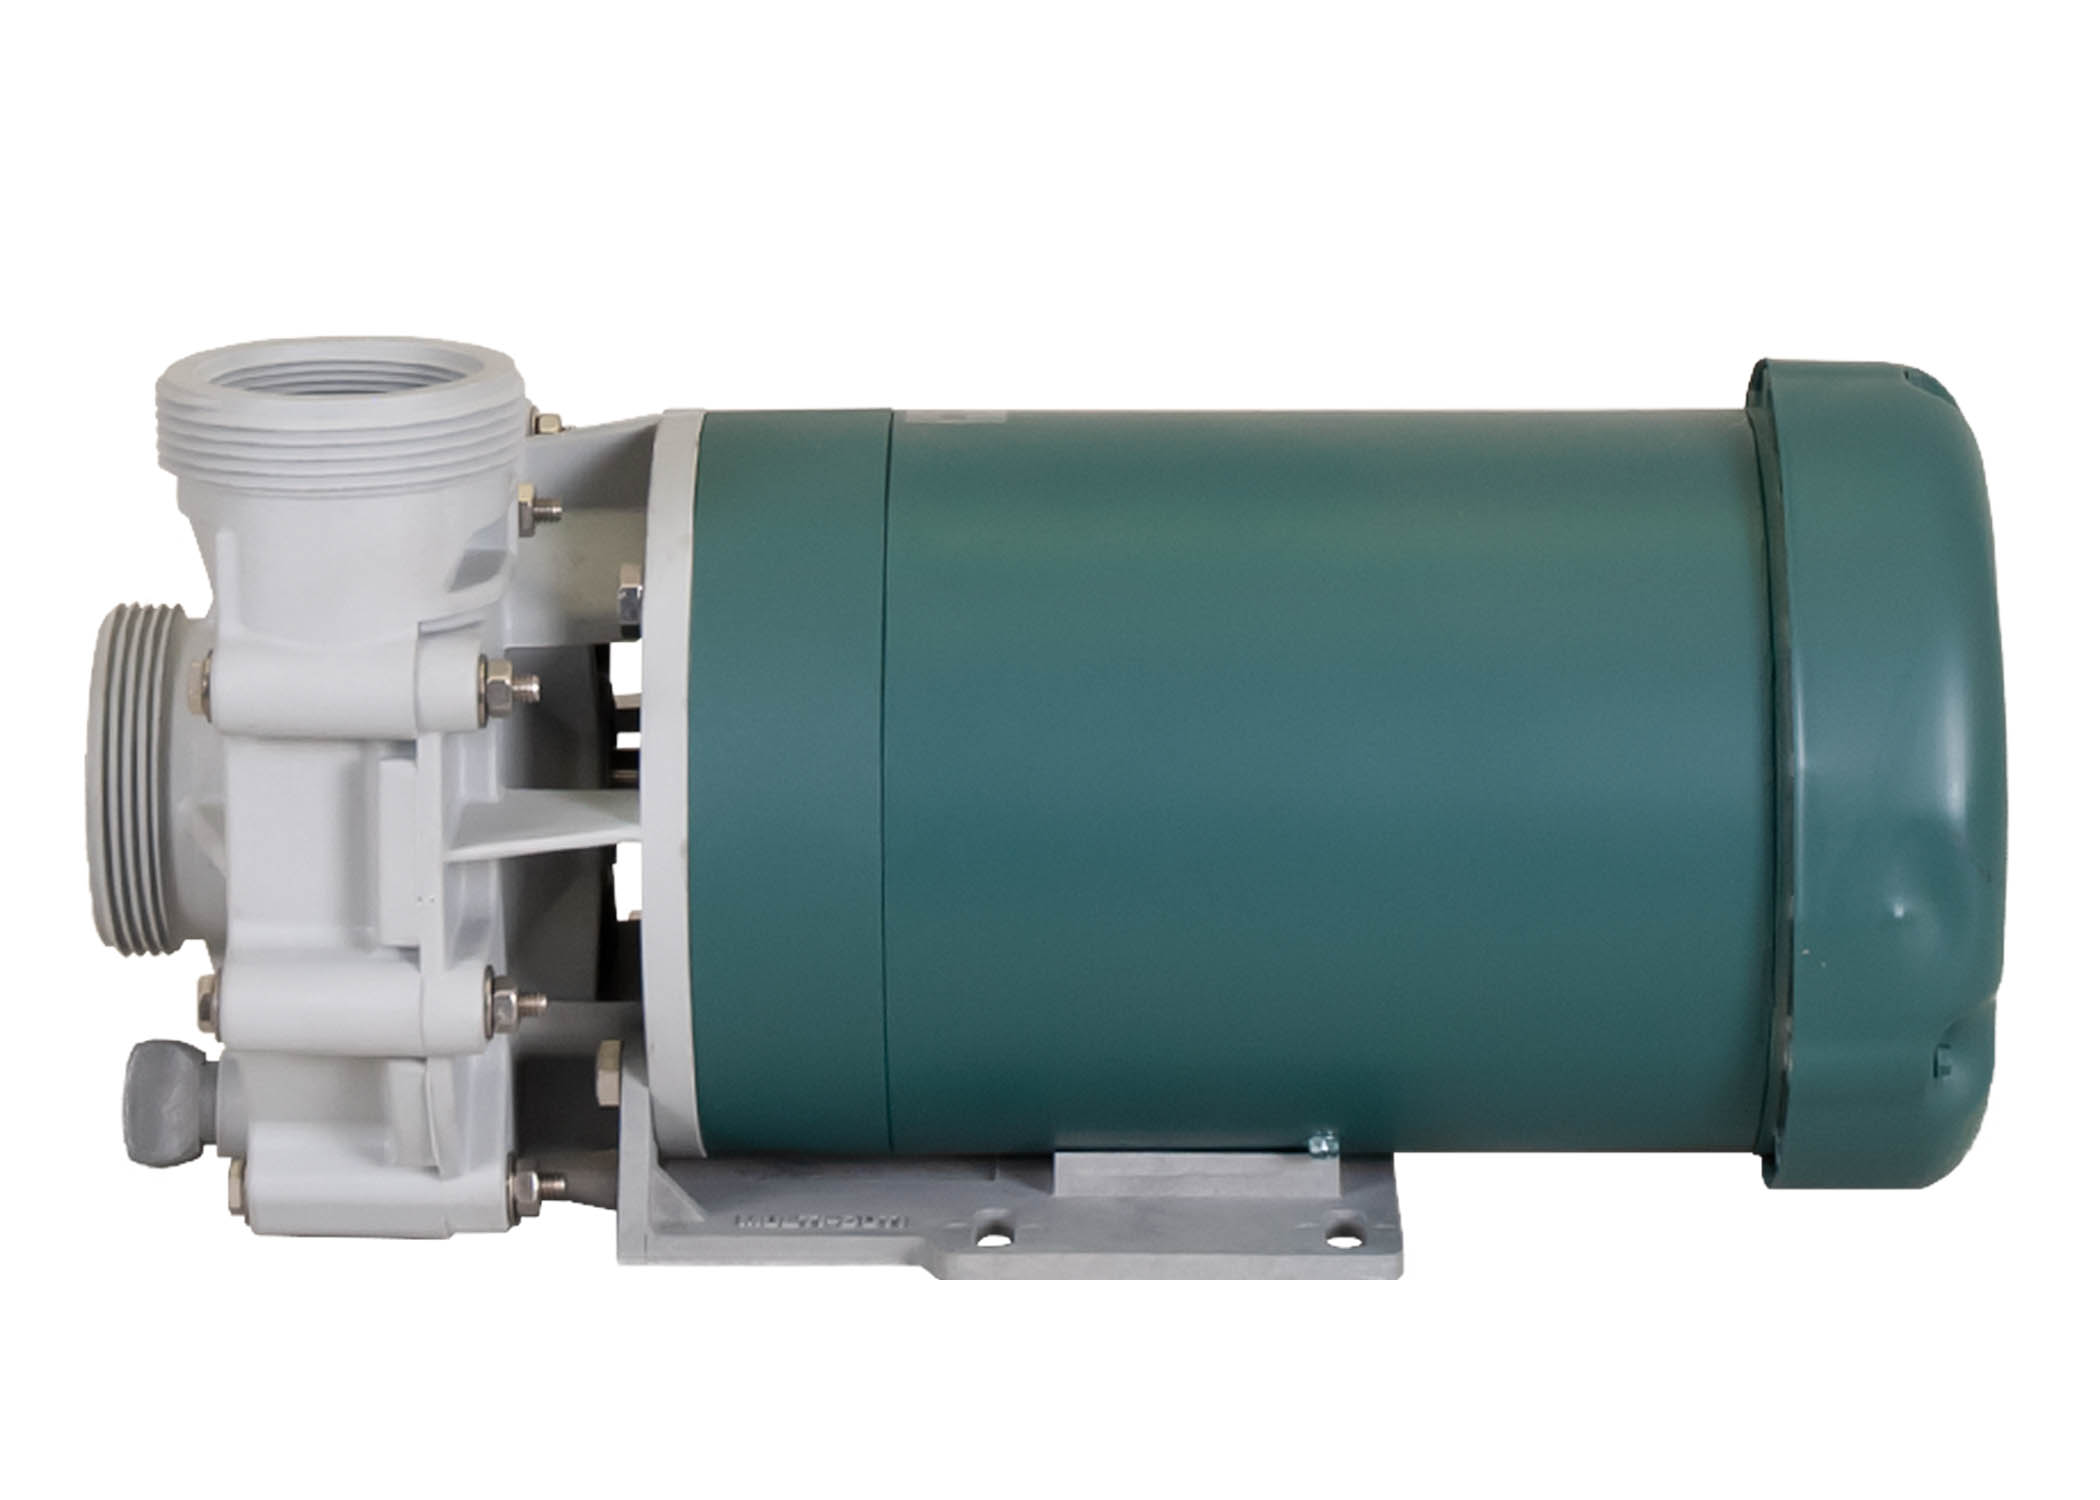 Advance 4000 Pump with green Leeson Motor right side view